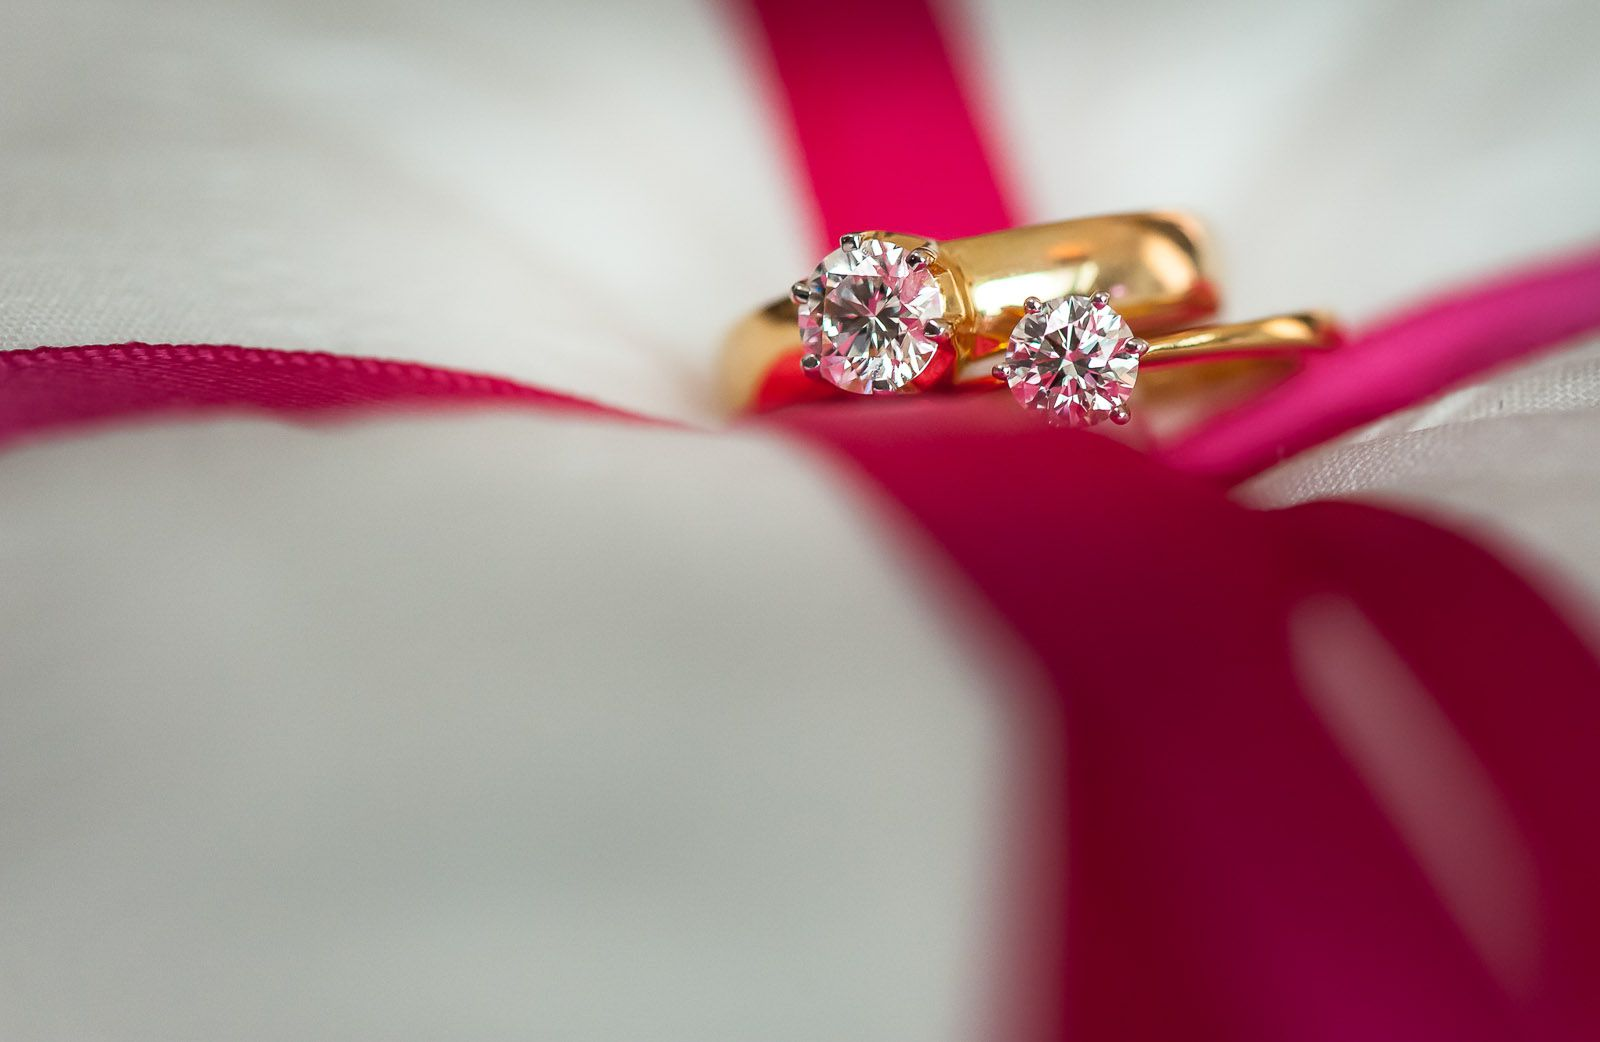 anoop-wedding-photographer-amazing-diamond-rings-bride-groom